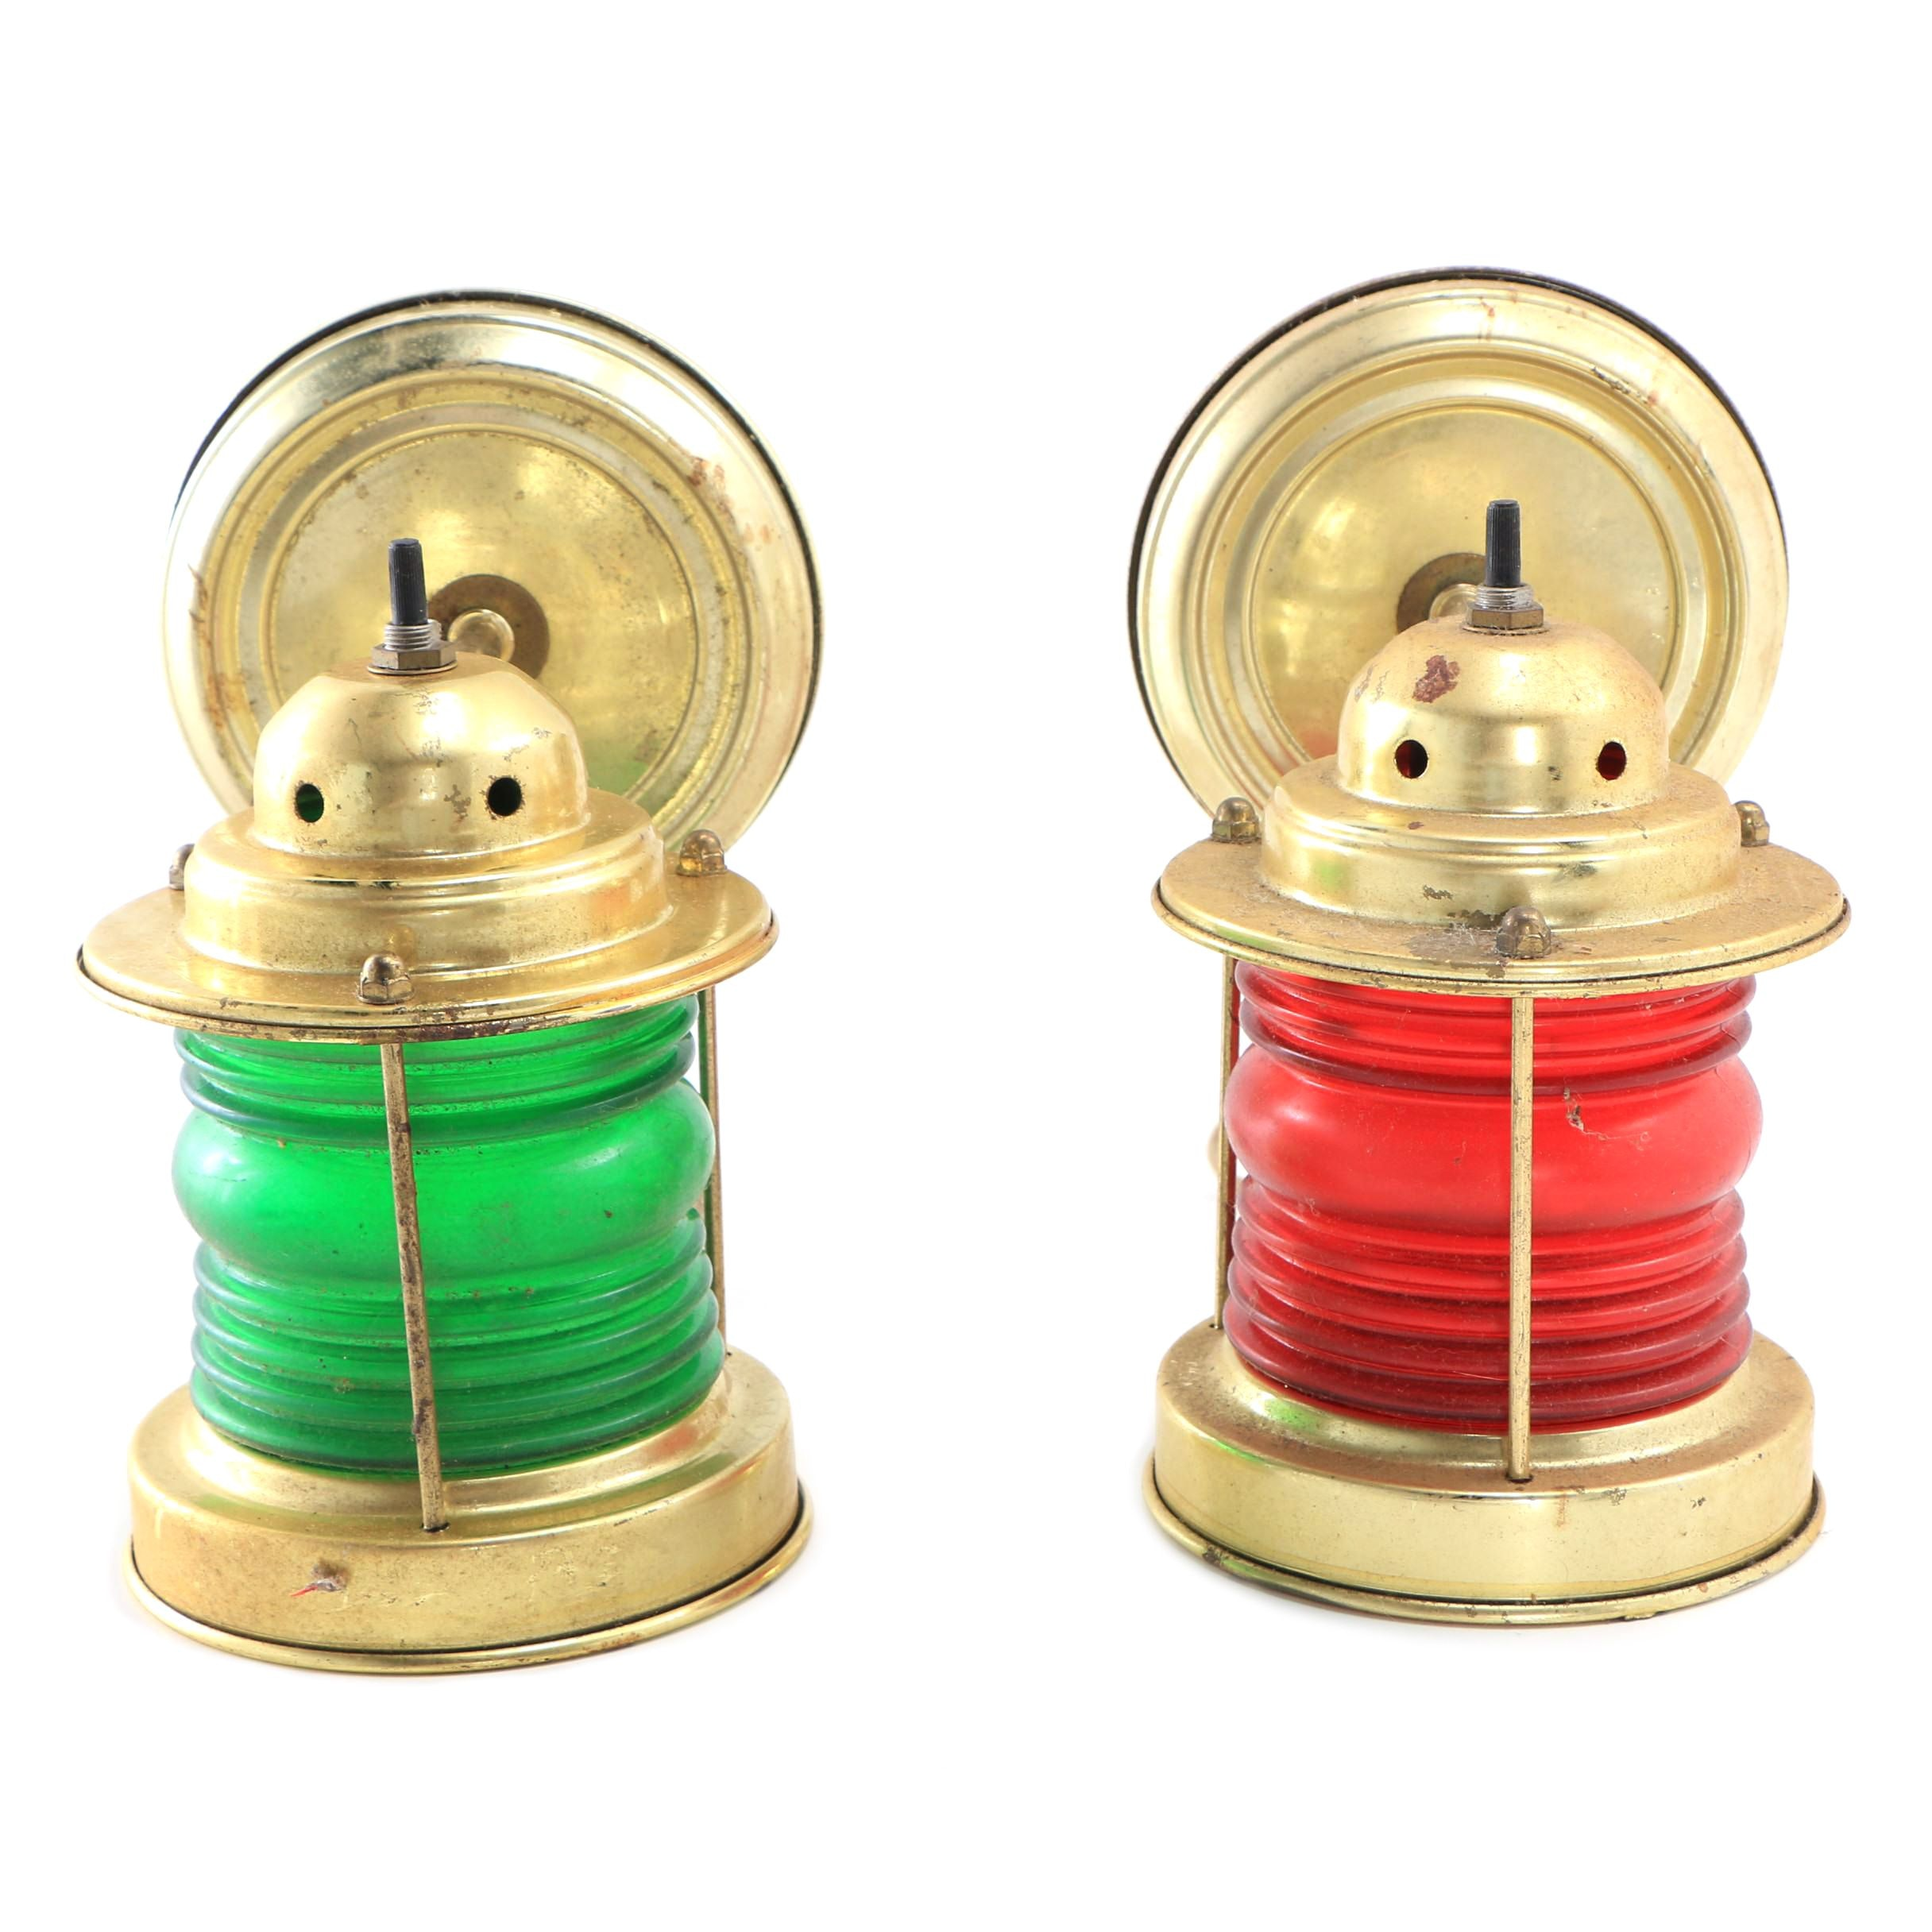 Brass Wall Sconces with Red and Green Glass Railroad Style Globes